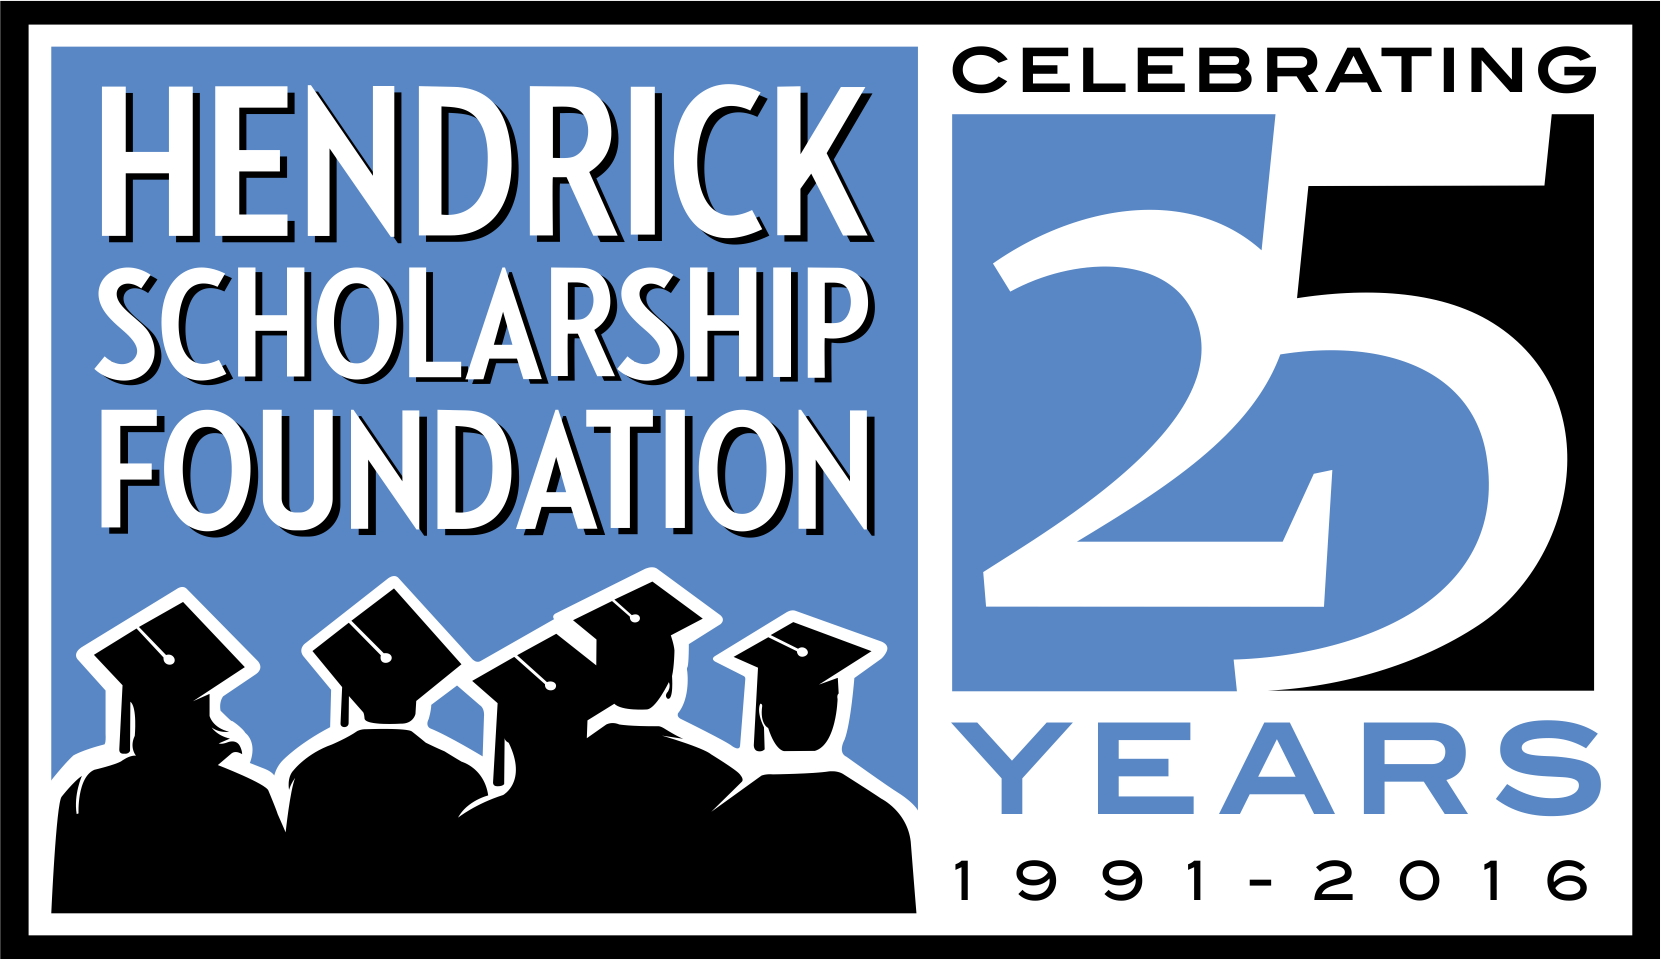 Hendrick Scholarship Foundation celebrates 25 years